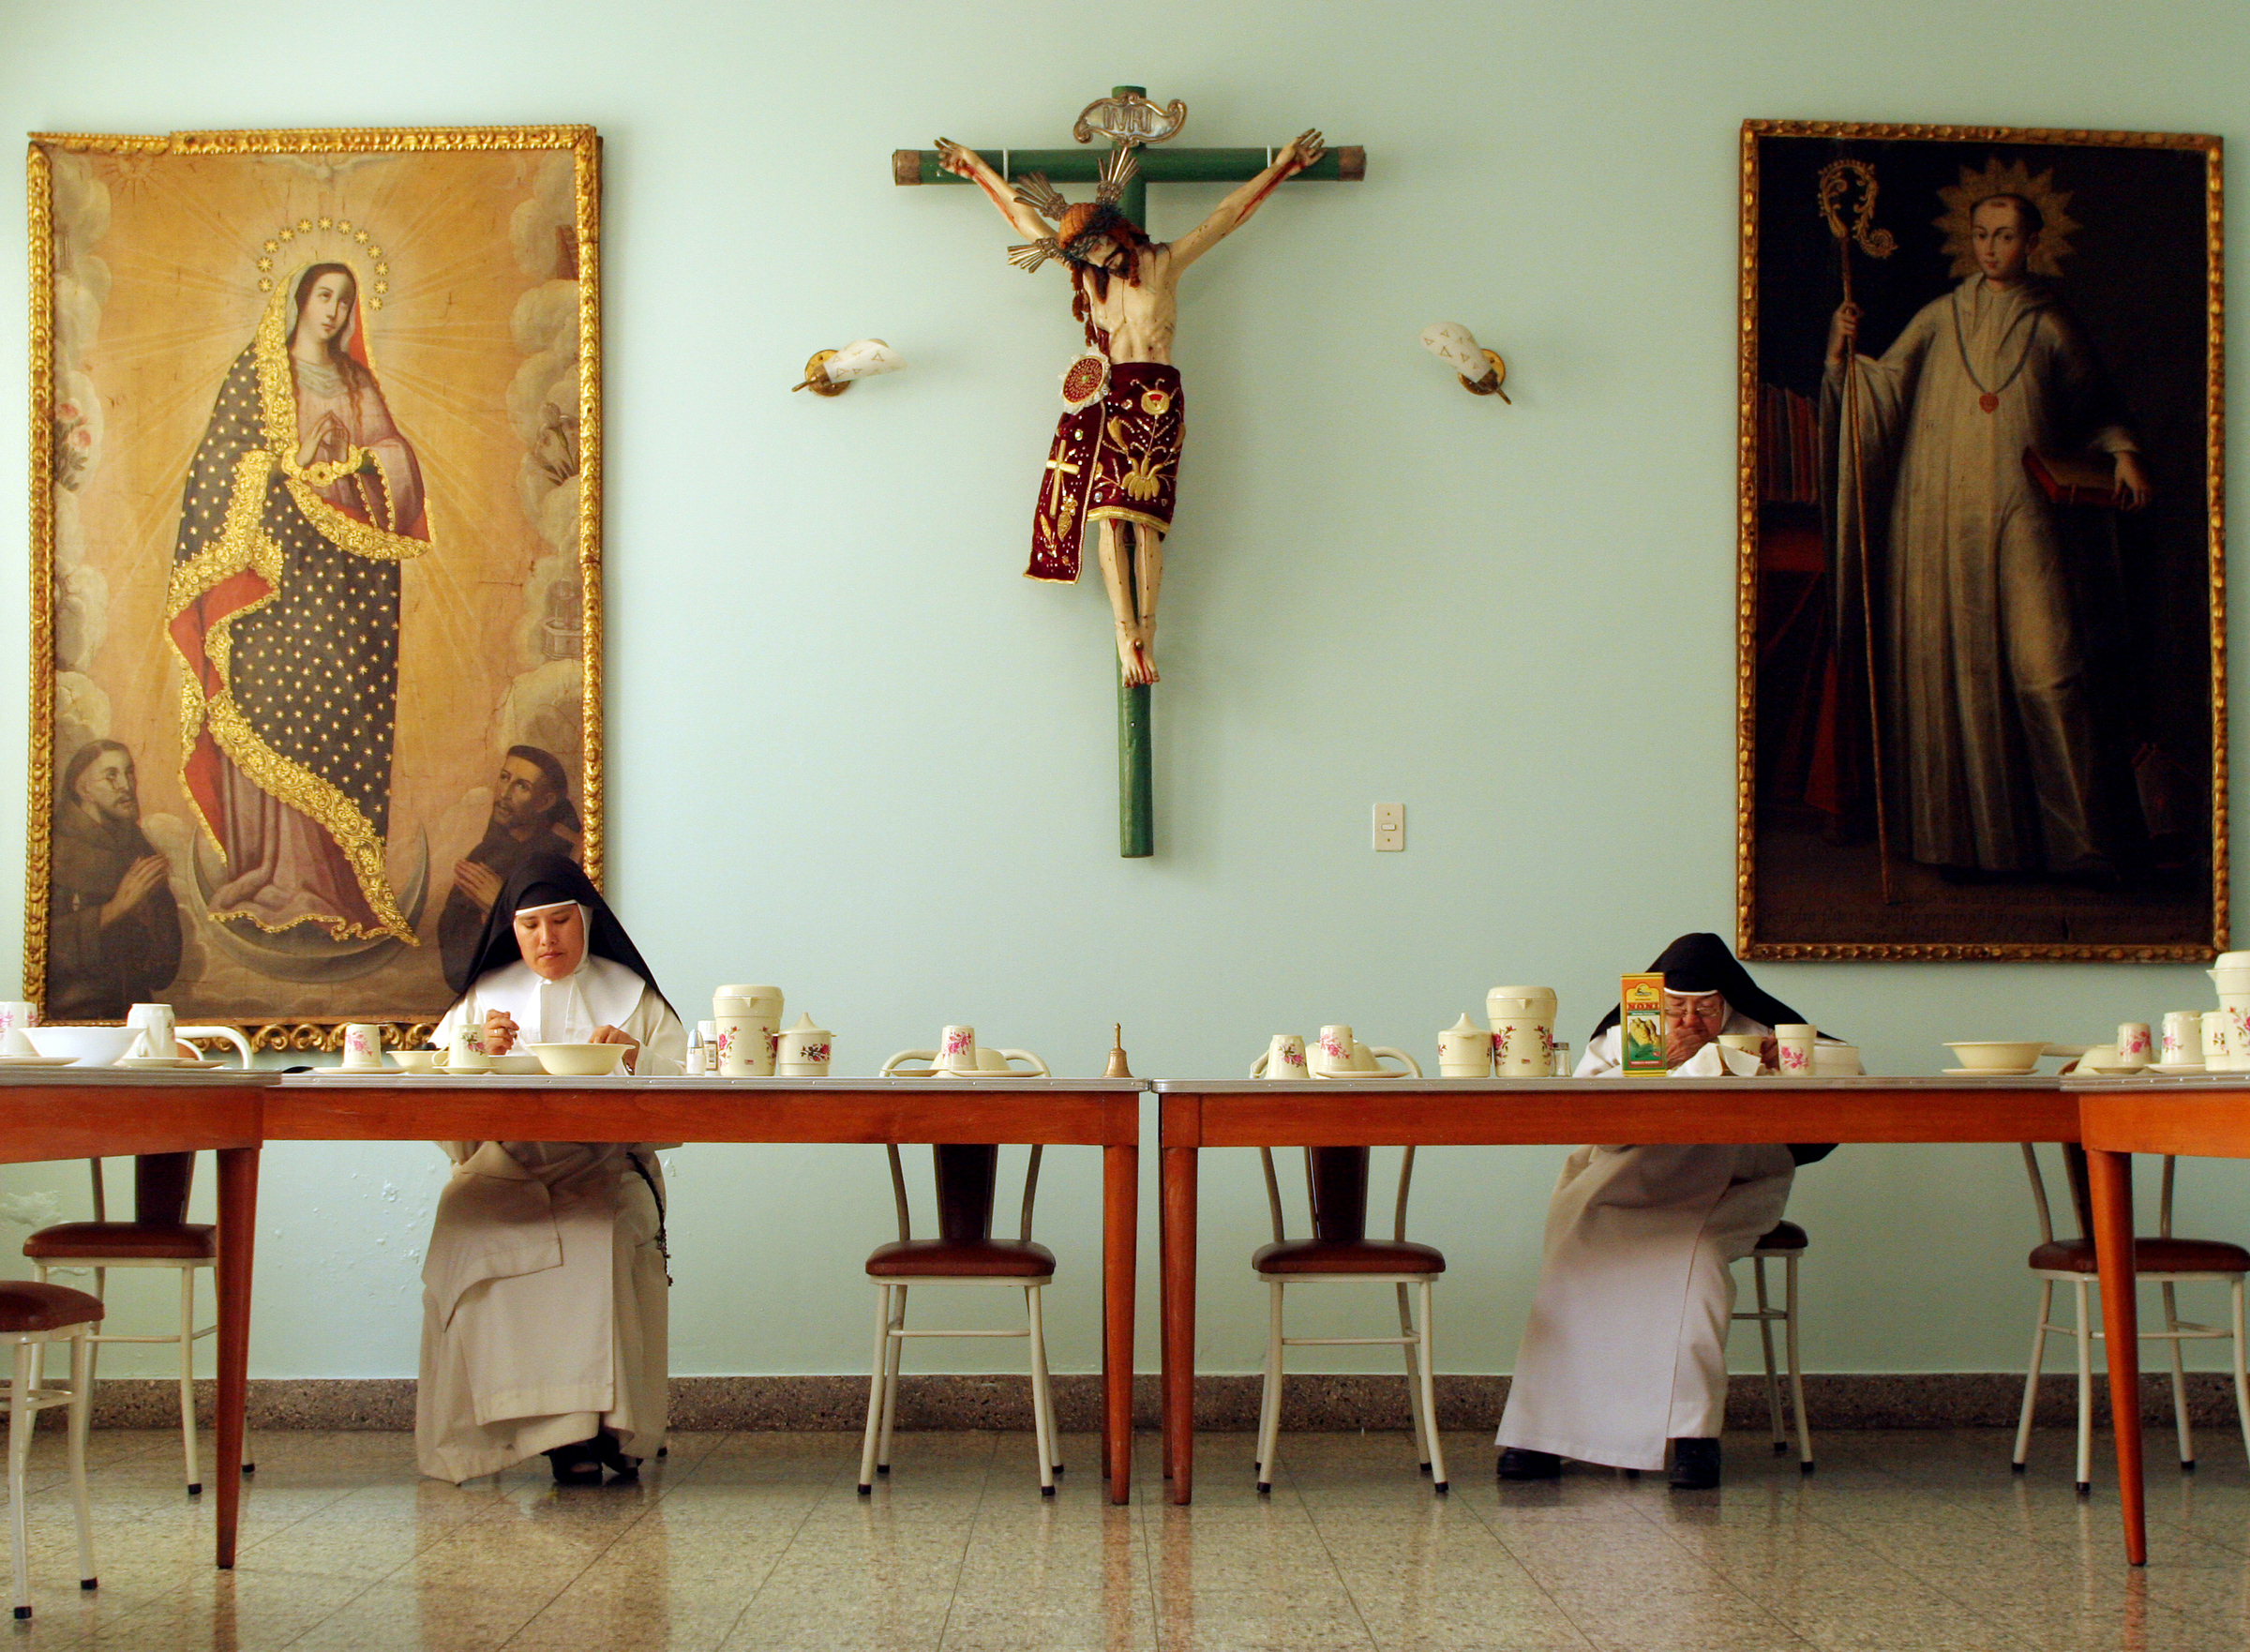 Sister Consuelo, right, eats breakfast every day at 8:15 a.m., after waking up at 5 a.m. and attending the morning prayer and daily Mass. As a cloistered nun, each hour of her day is devoted to Christ; the nuns meditate and think about God even during their recreation time.